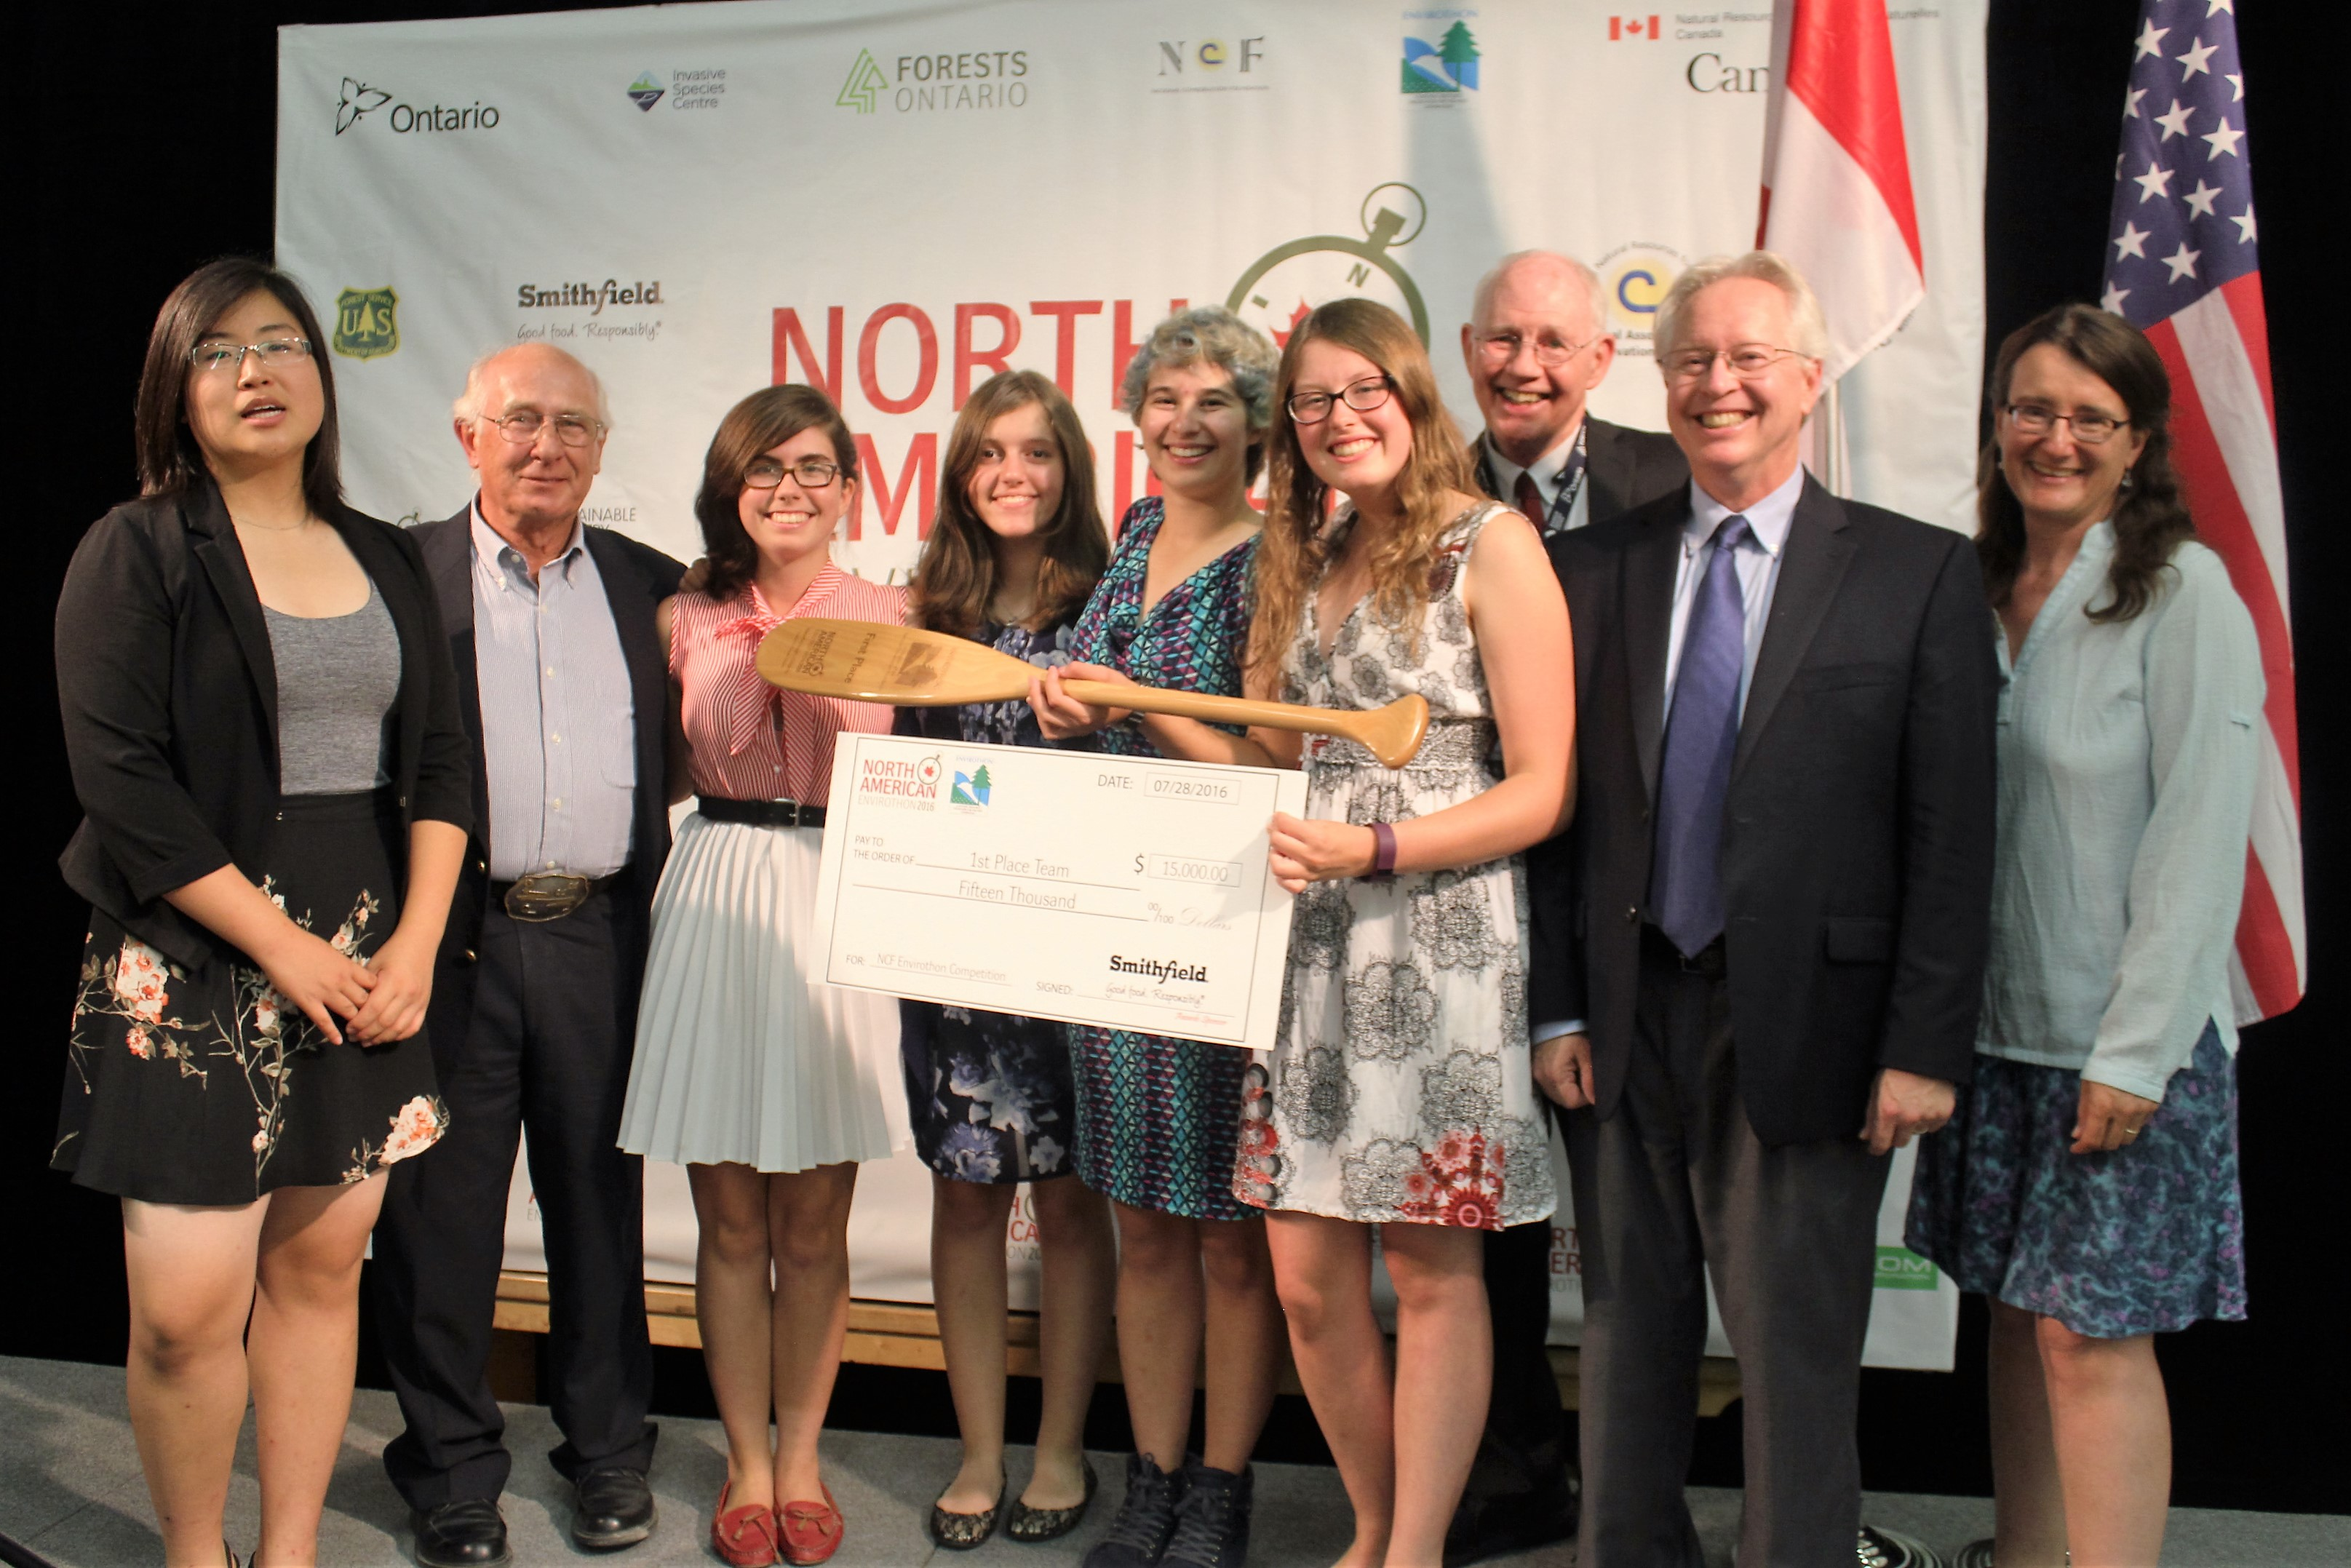 University of Toronto Schools (UTS) accepting top prize at 2016 North American Envirothon